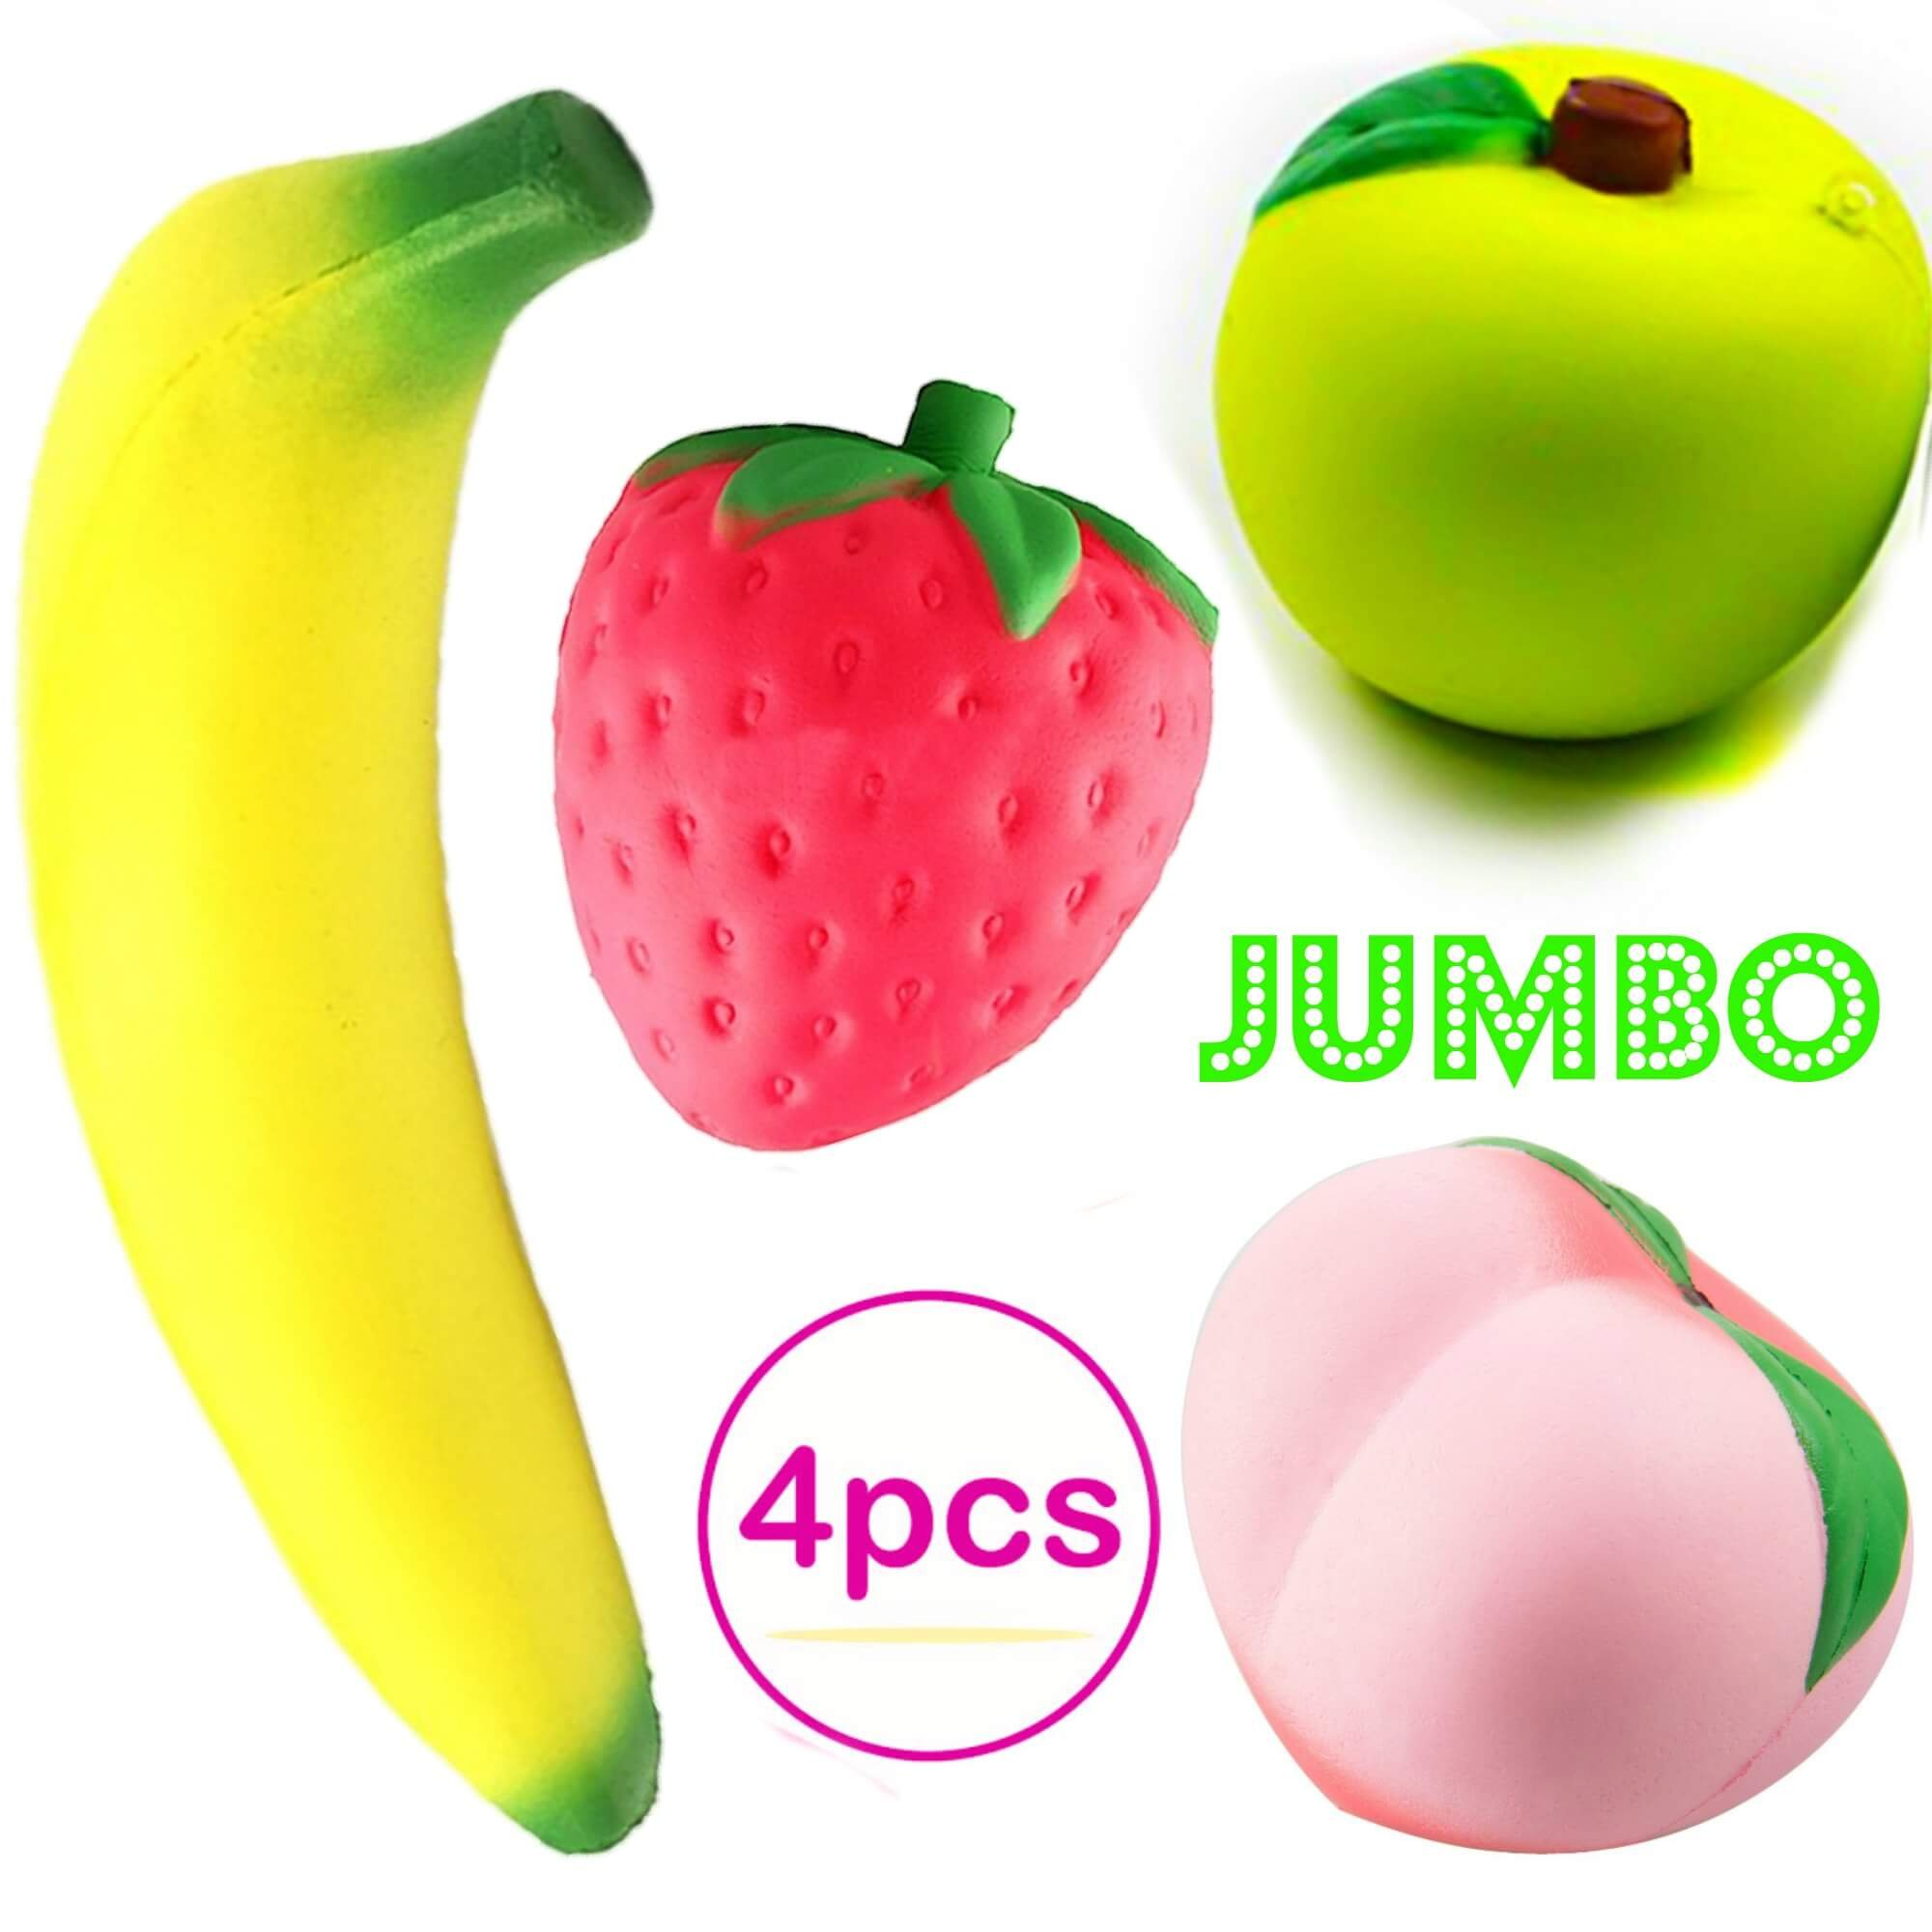 Squishies Slow Rising Jumbo Fruit - Prime 4 Pack Kawaii Squishy Toys Package Strawberry Peach Banana Apple Giant Scented Fruit Pack Cute Squishys Super Soft Stress Relief GIFT For Kids & Adults by Buylet Squishies